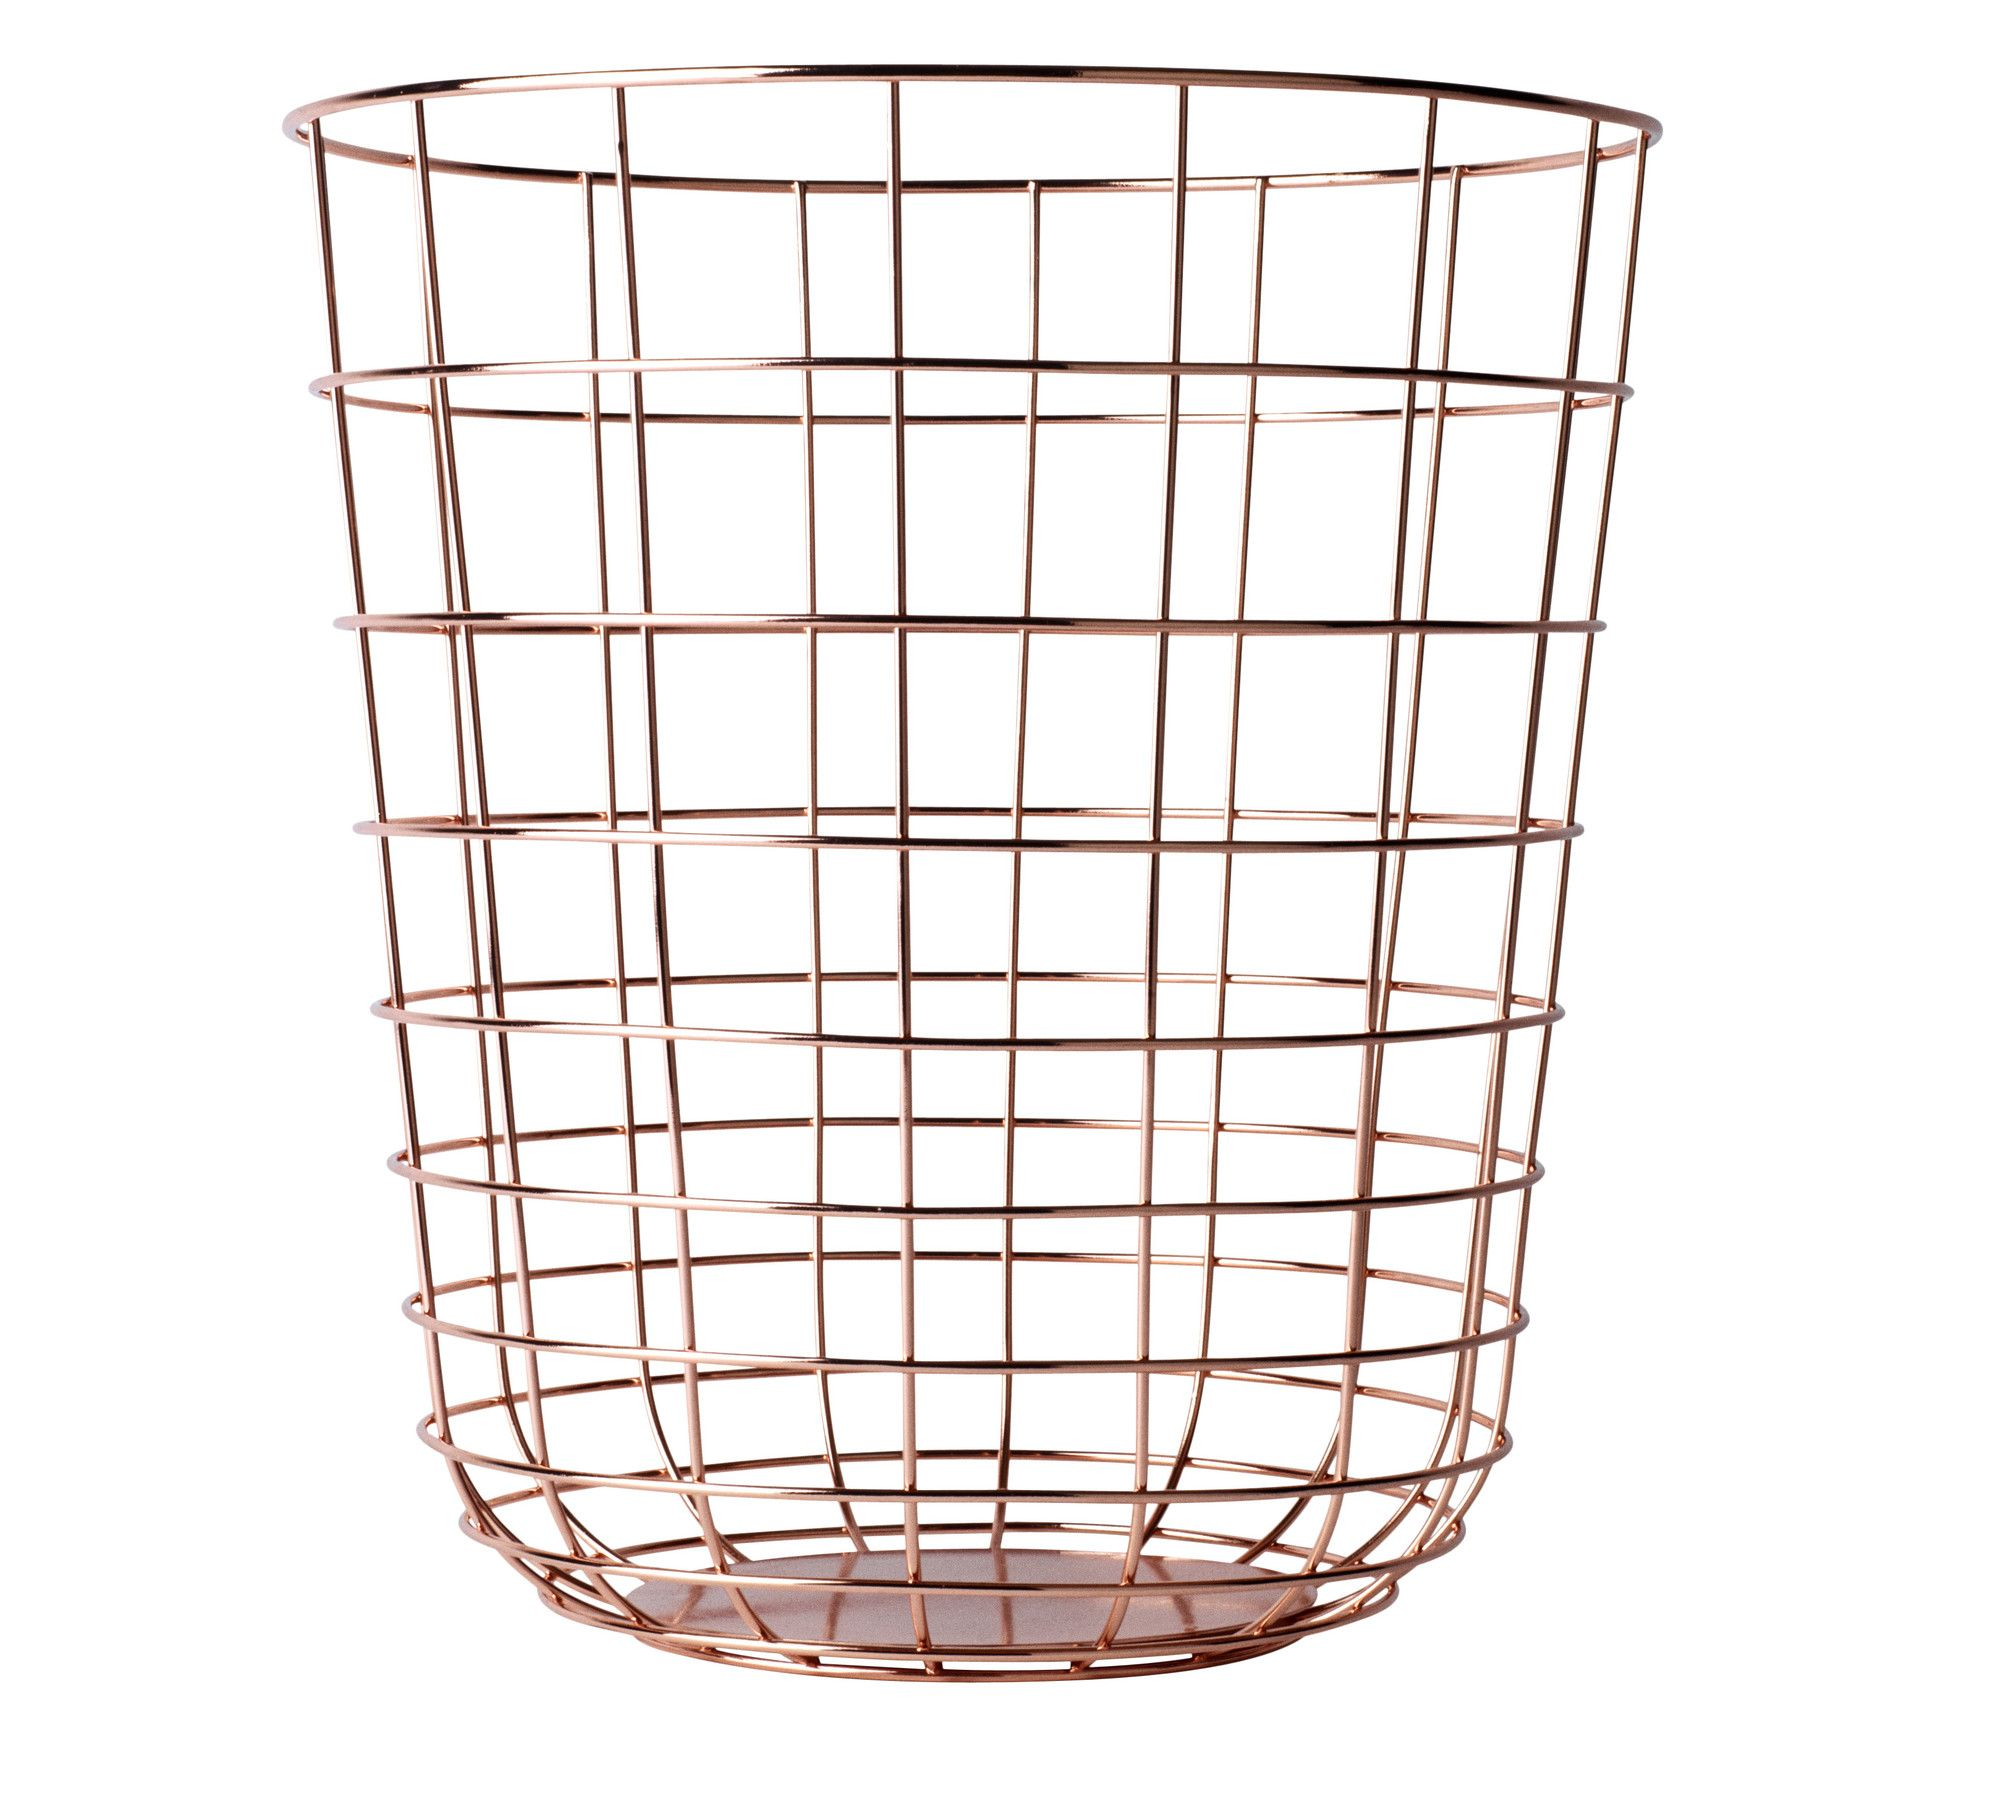 Norm Wire Basket | Products | Pinterest | Wire basket and Products